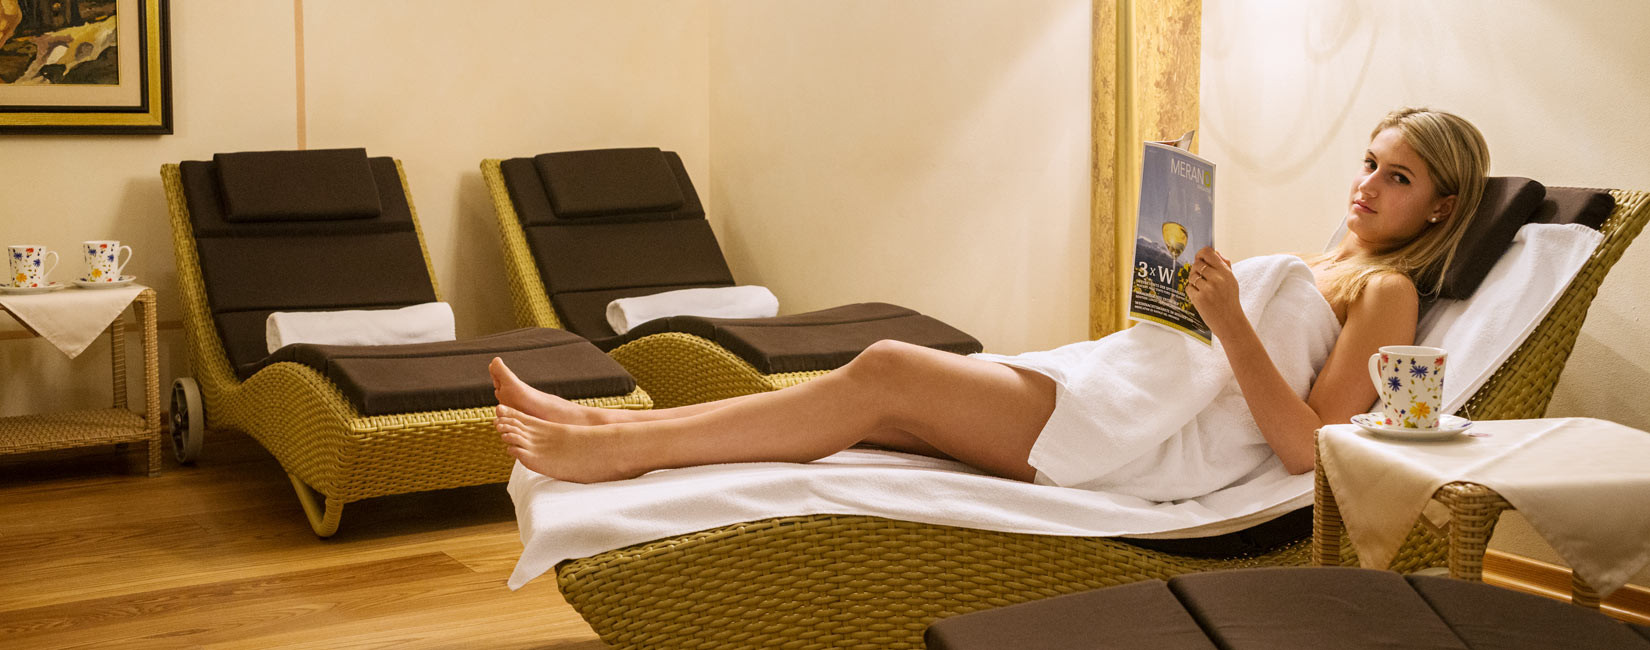 Beauty treatments, baths and massages